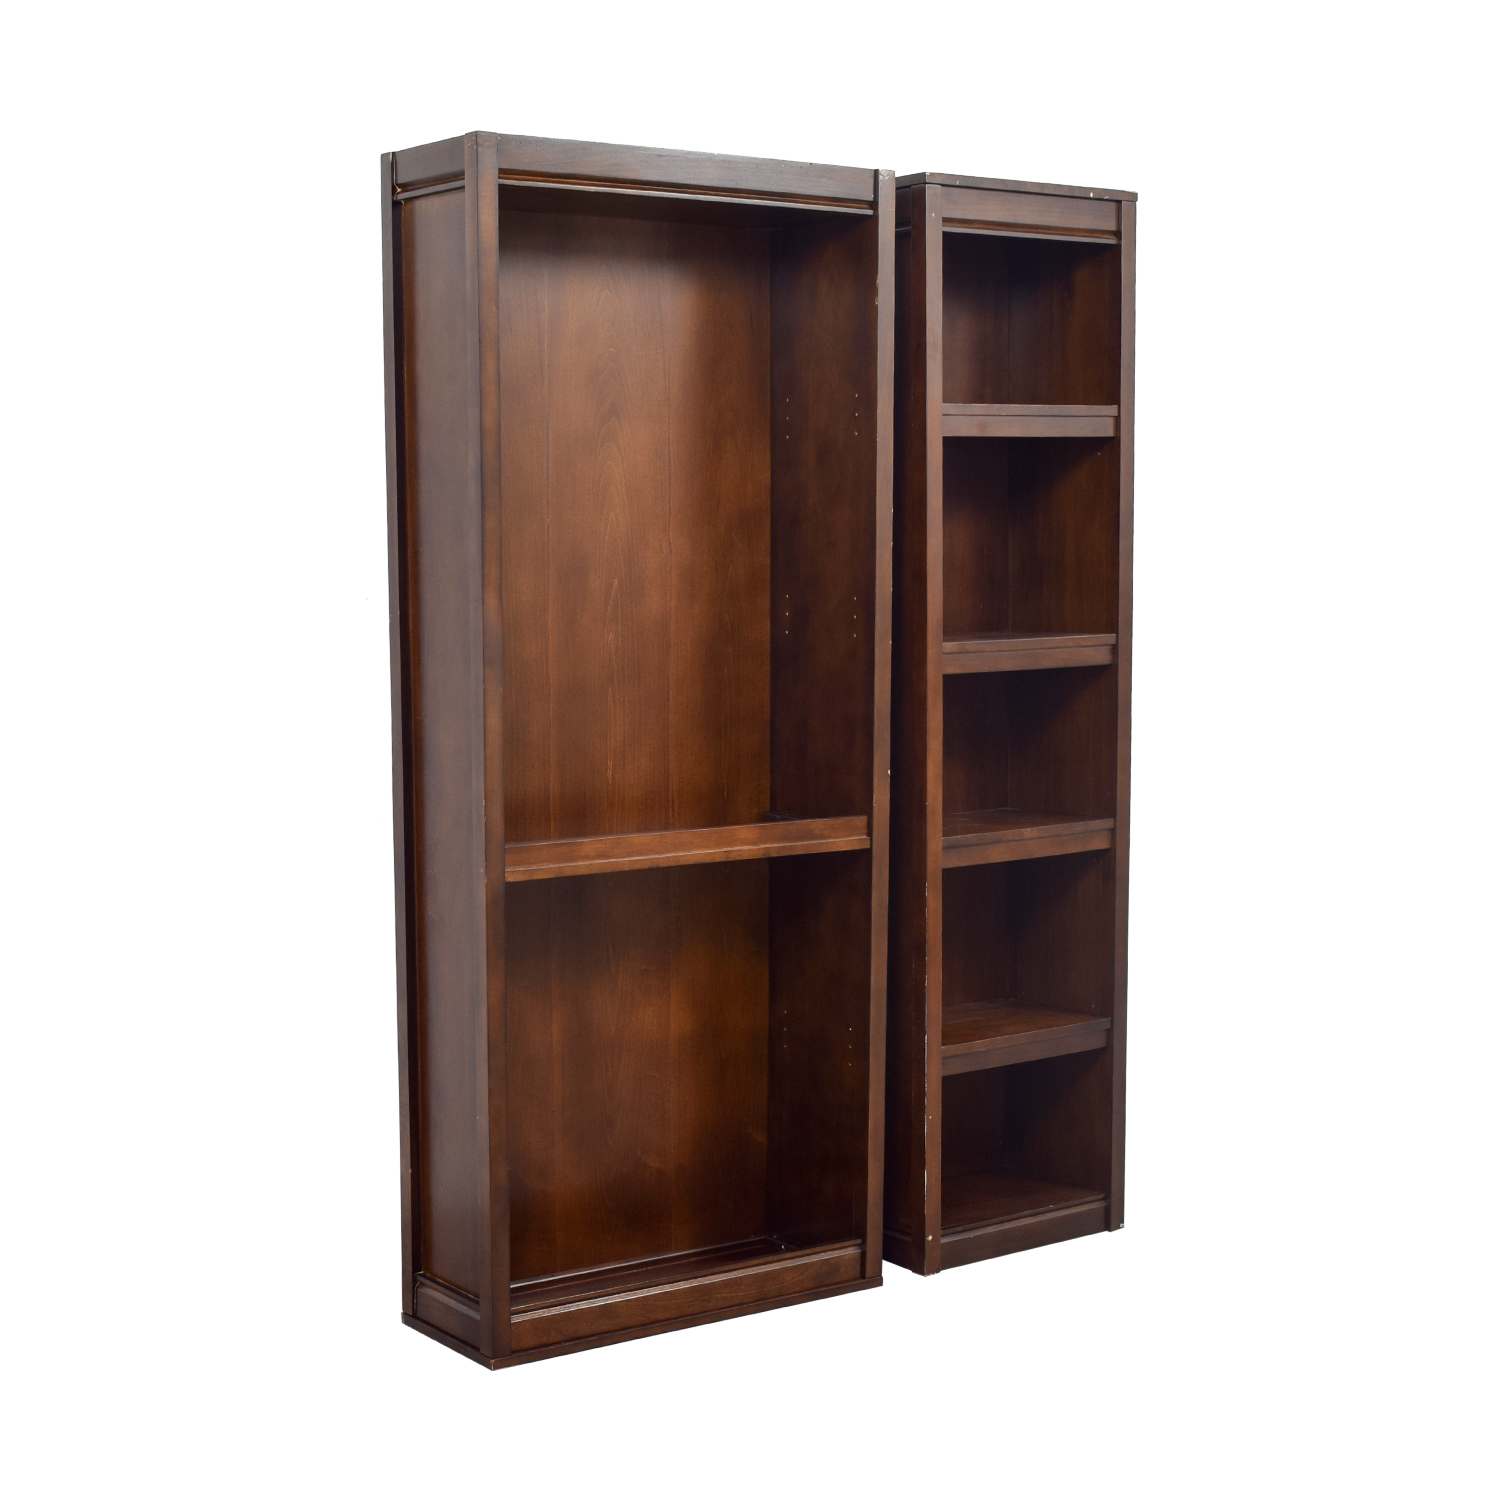 Two Wood Bookcases used